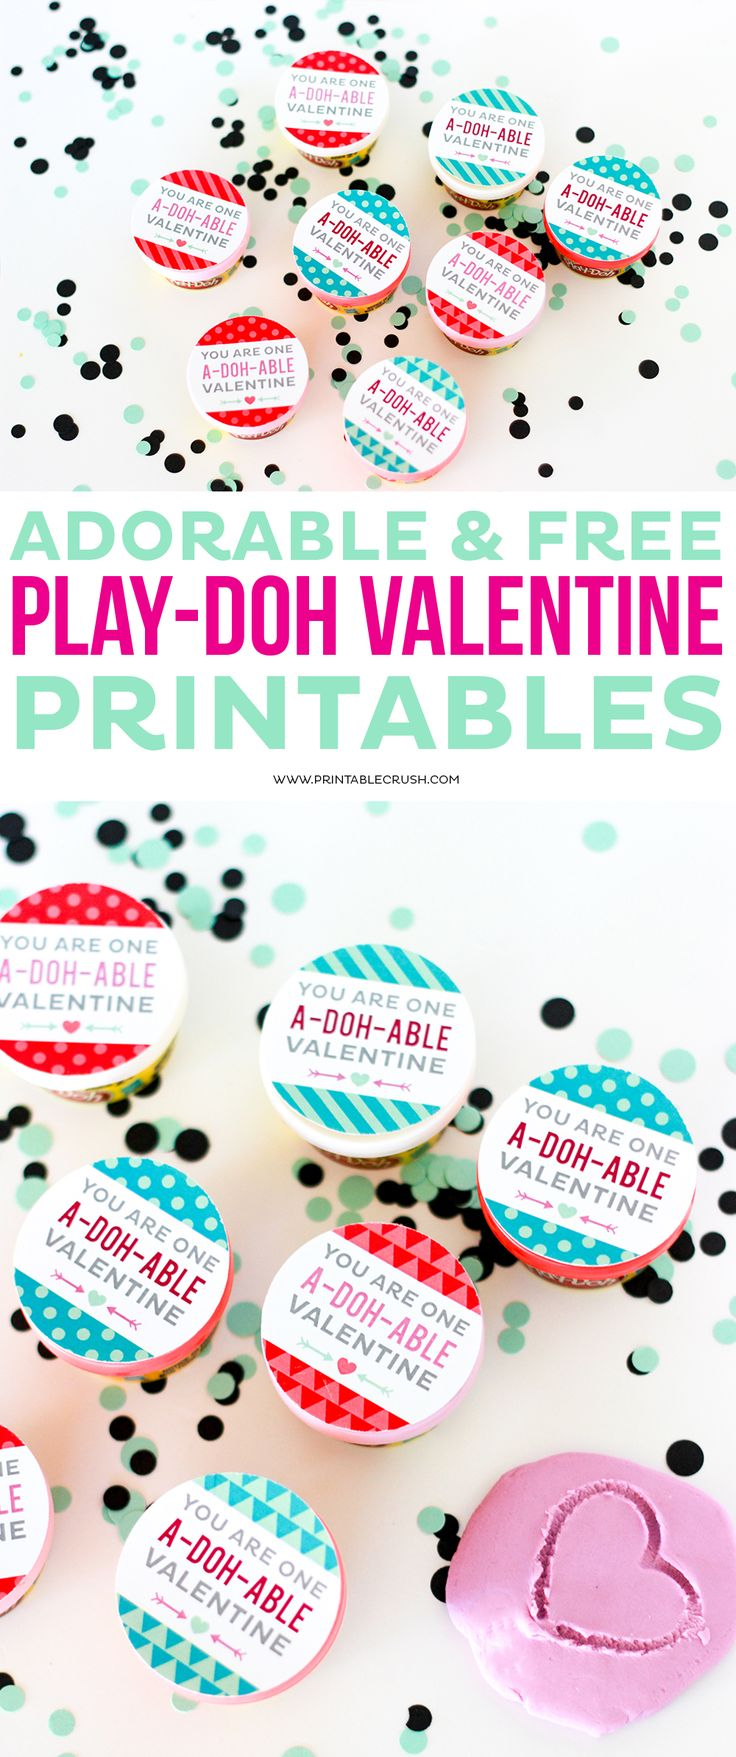 Adorable and FREE Play doh Valentine Printables 246